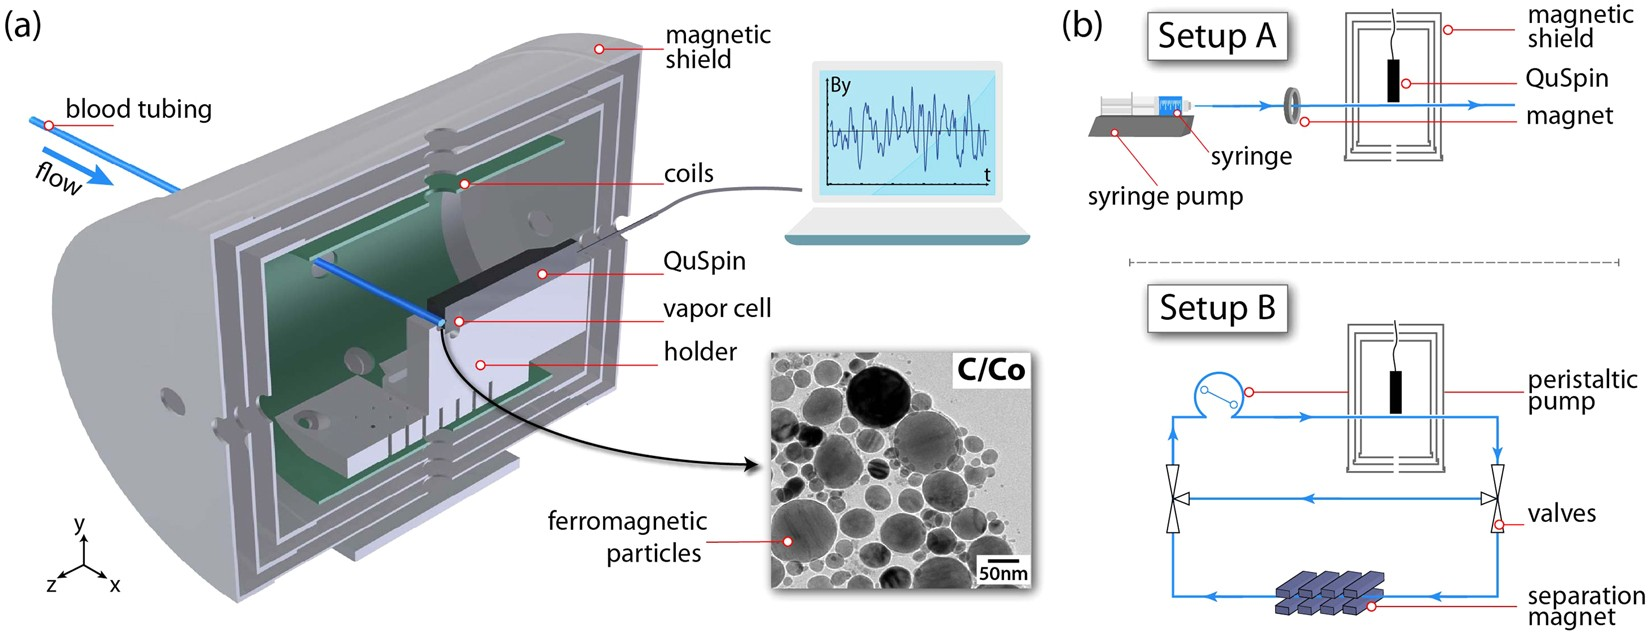 Nondestructive in-line sub-picomolar detection of magnetic